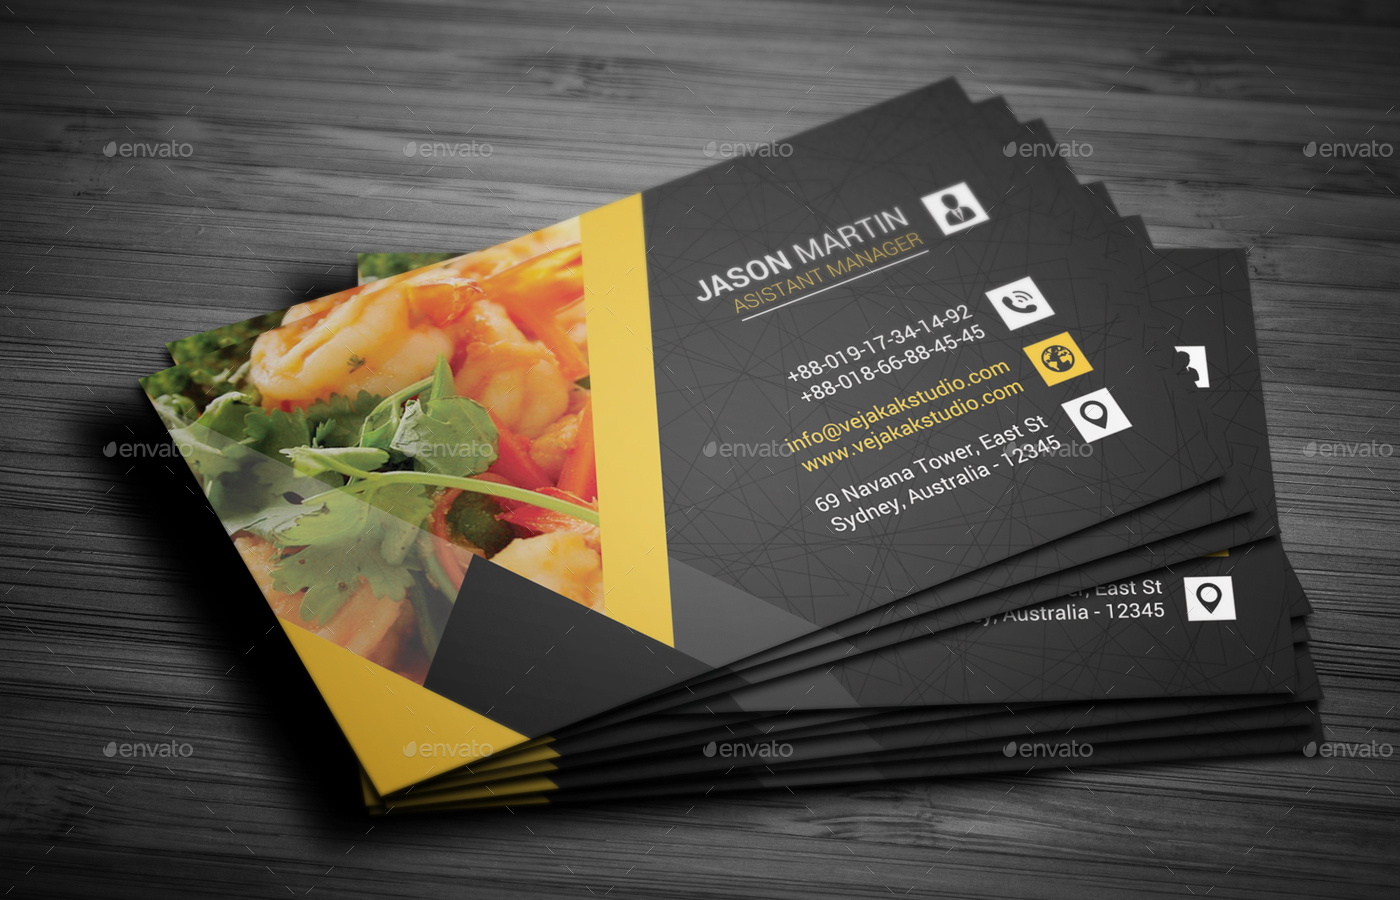 Restaurant business card by vejakakstudio graphicriver preview01g reheart Choice Image